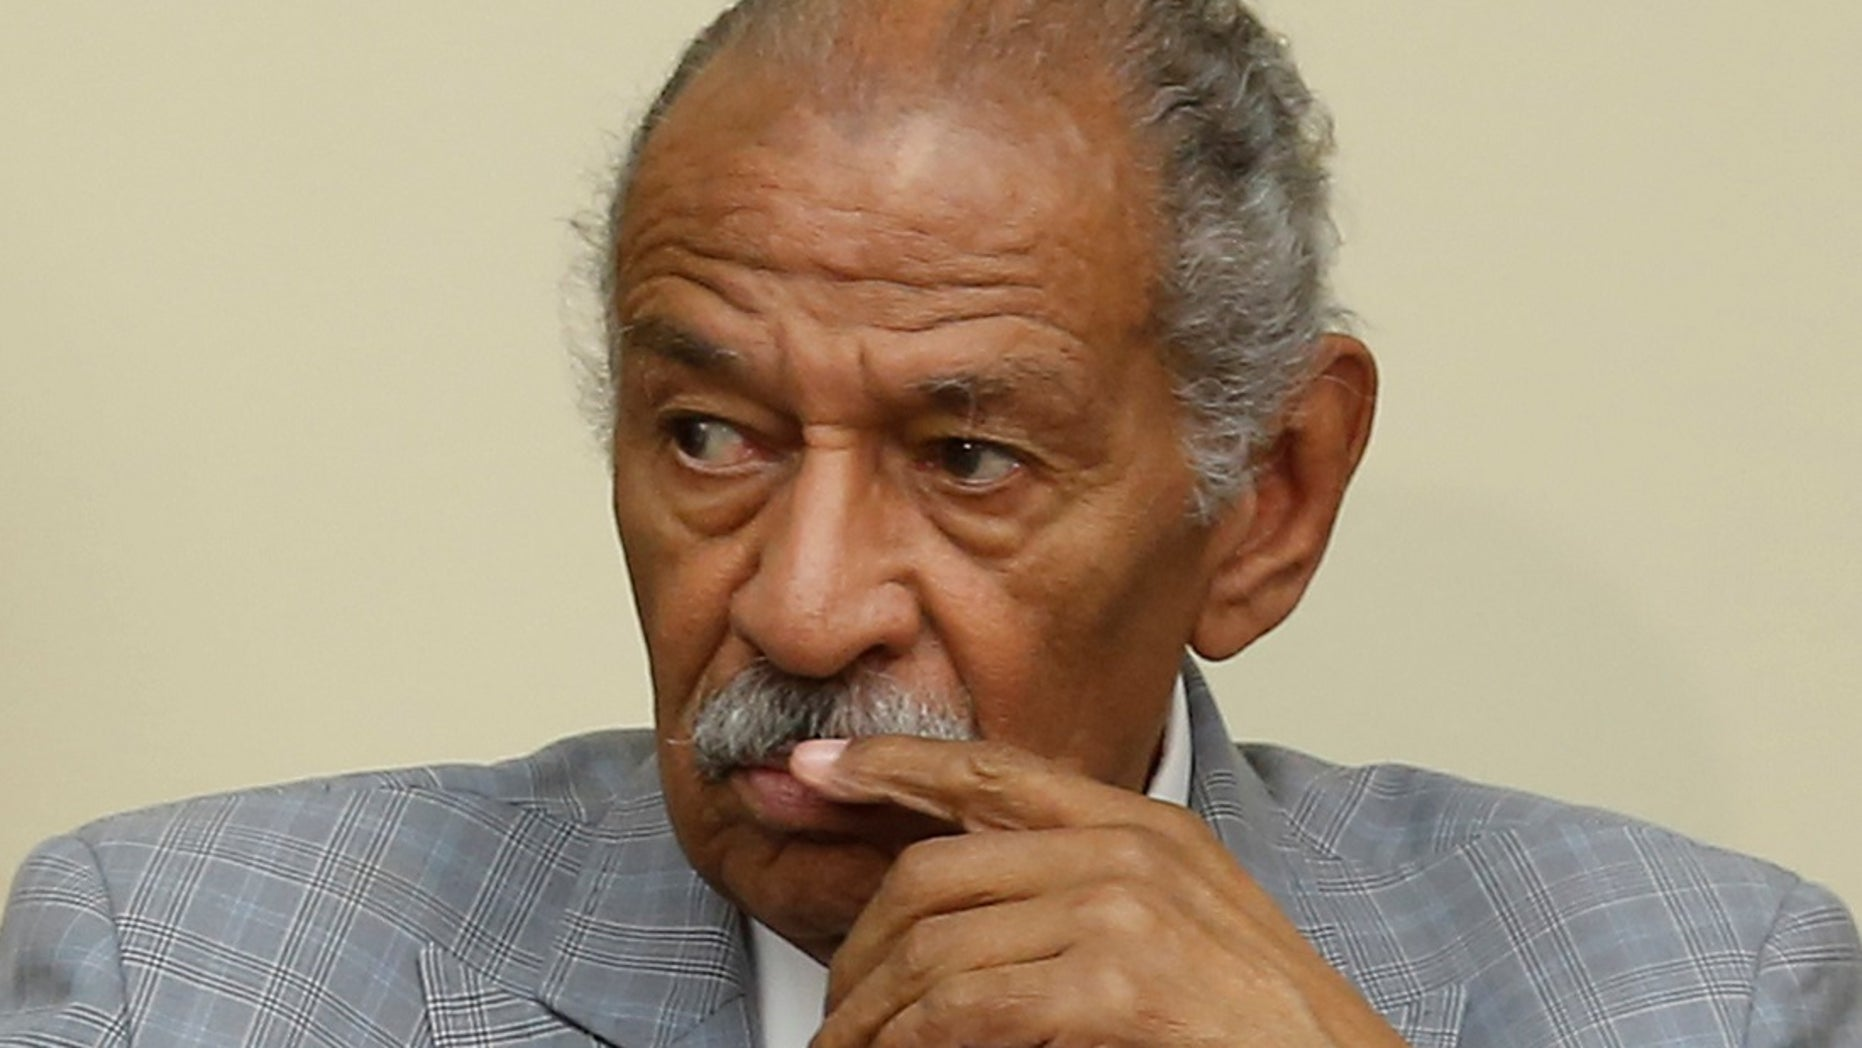 Conyers' 53-year career in Congress came to an end amid sexual misconduct allegations